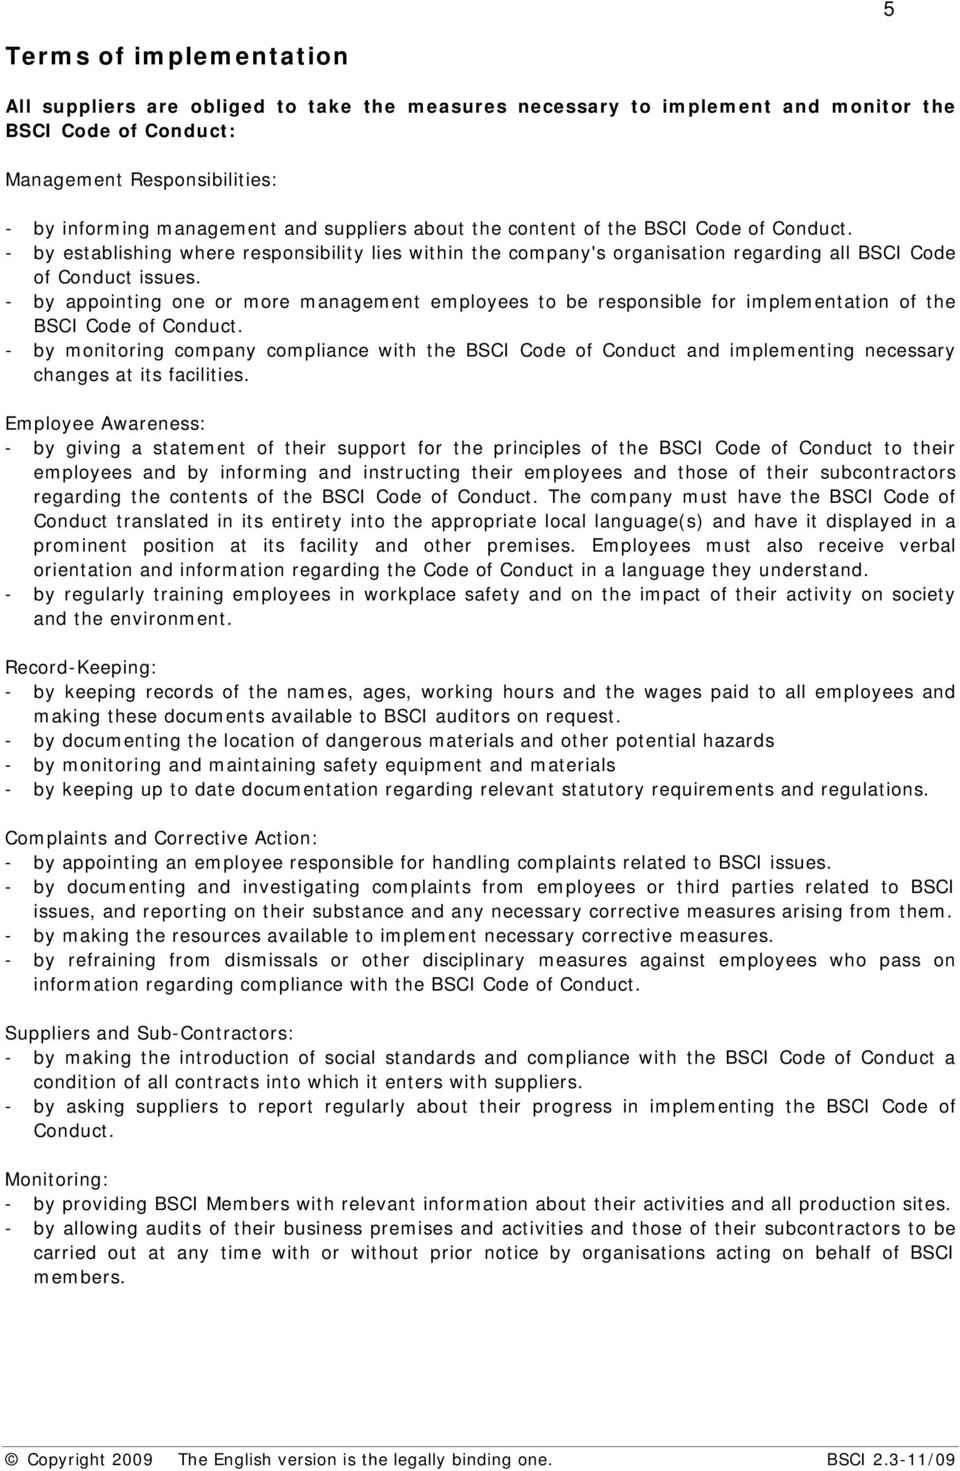 - by appointing one or more management employees to be responsible for implementation of the BSCI Code of Conduct.